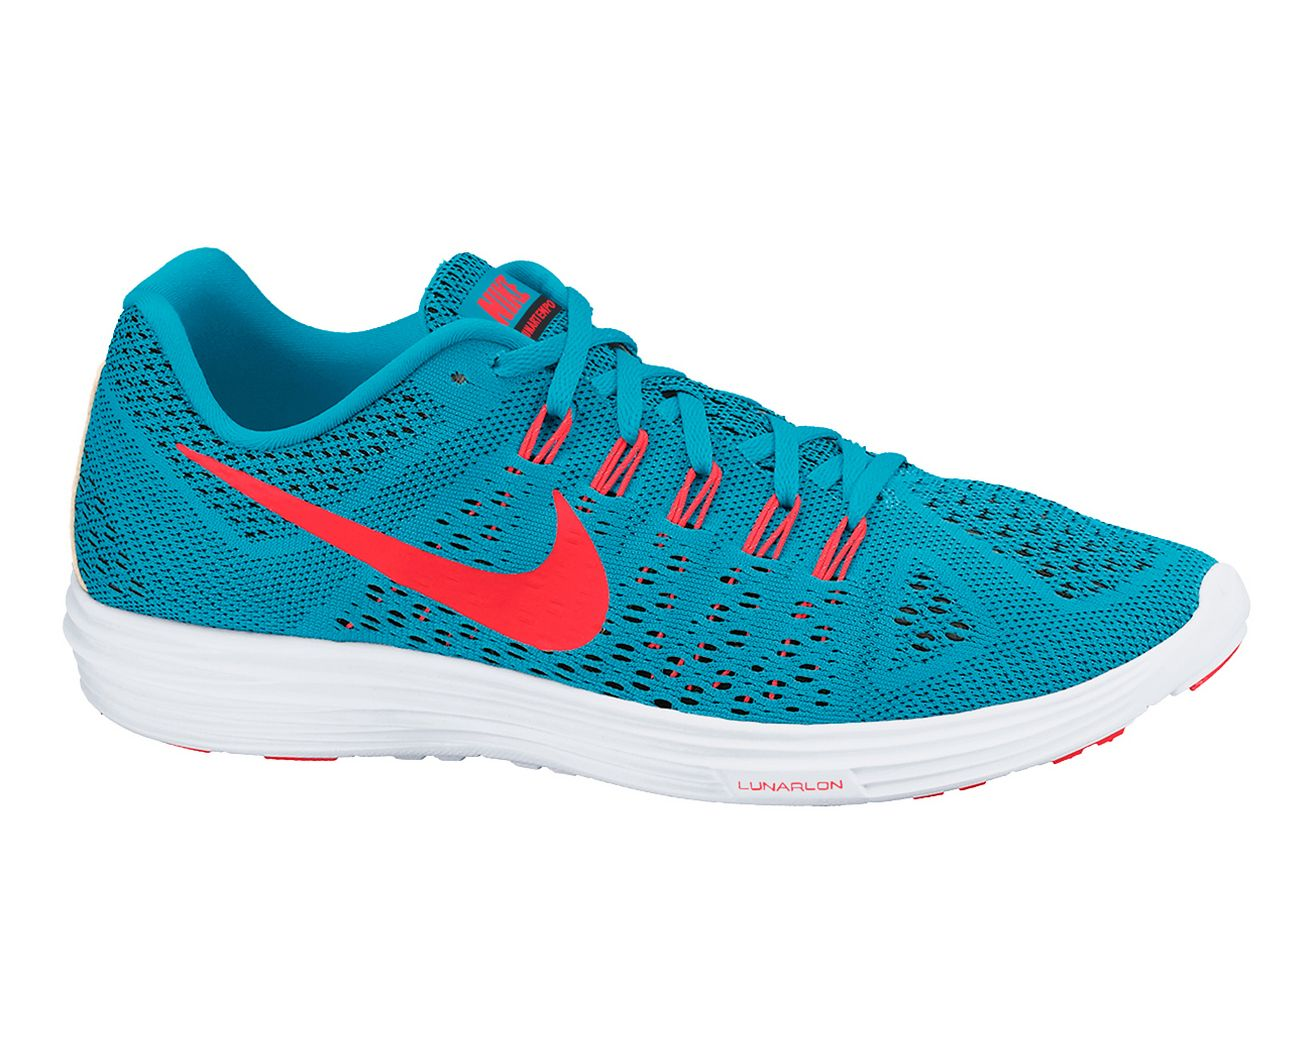 Nike LunarTempo Women's Running Shoes Red